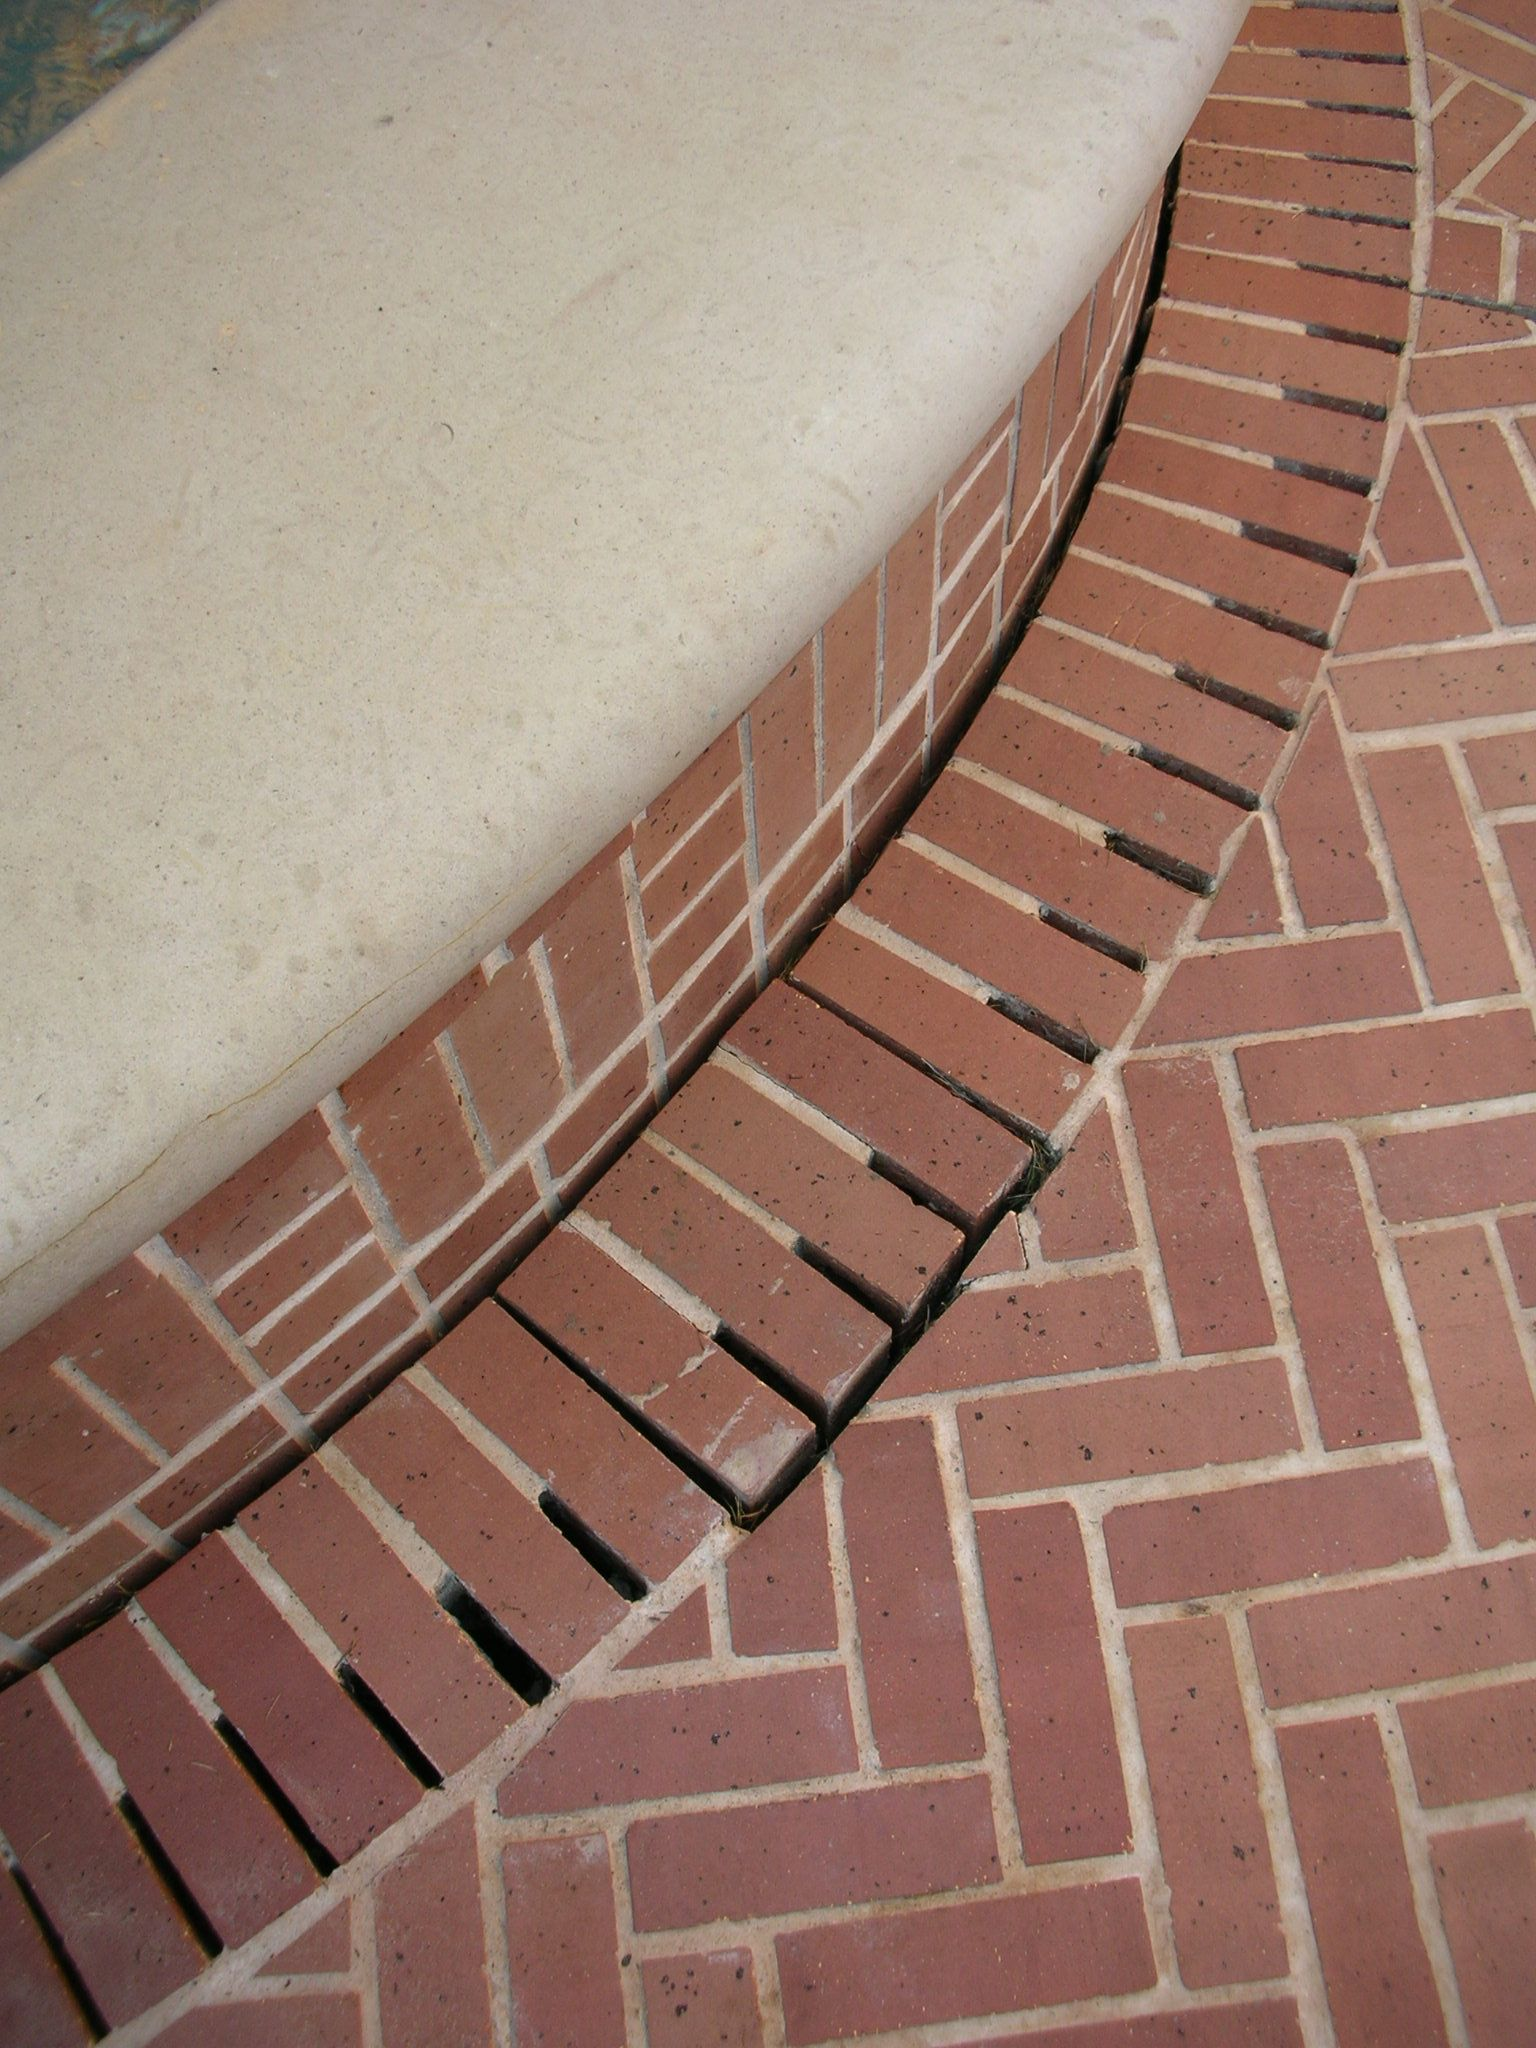 Drainage Detail With Brick Mcdugald Steele French Drain Trench Drain Backyard Drainage